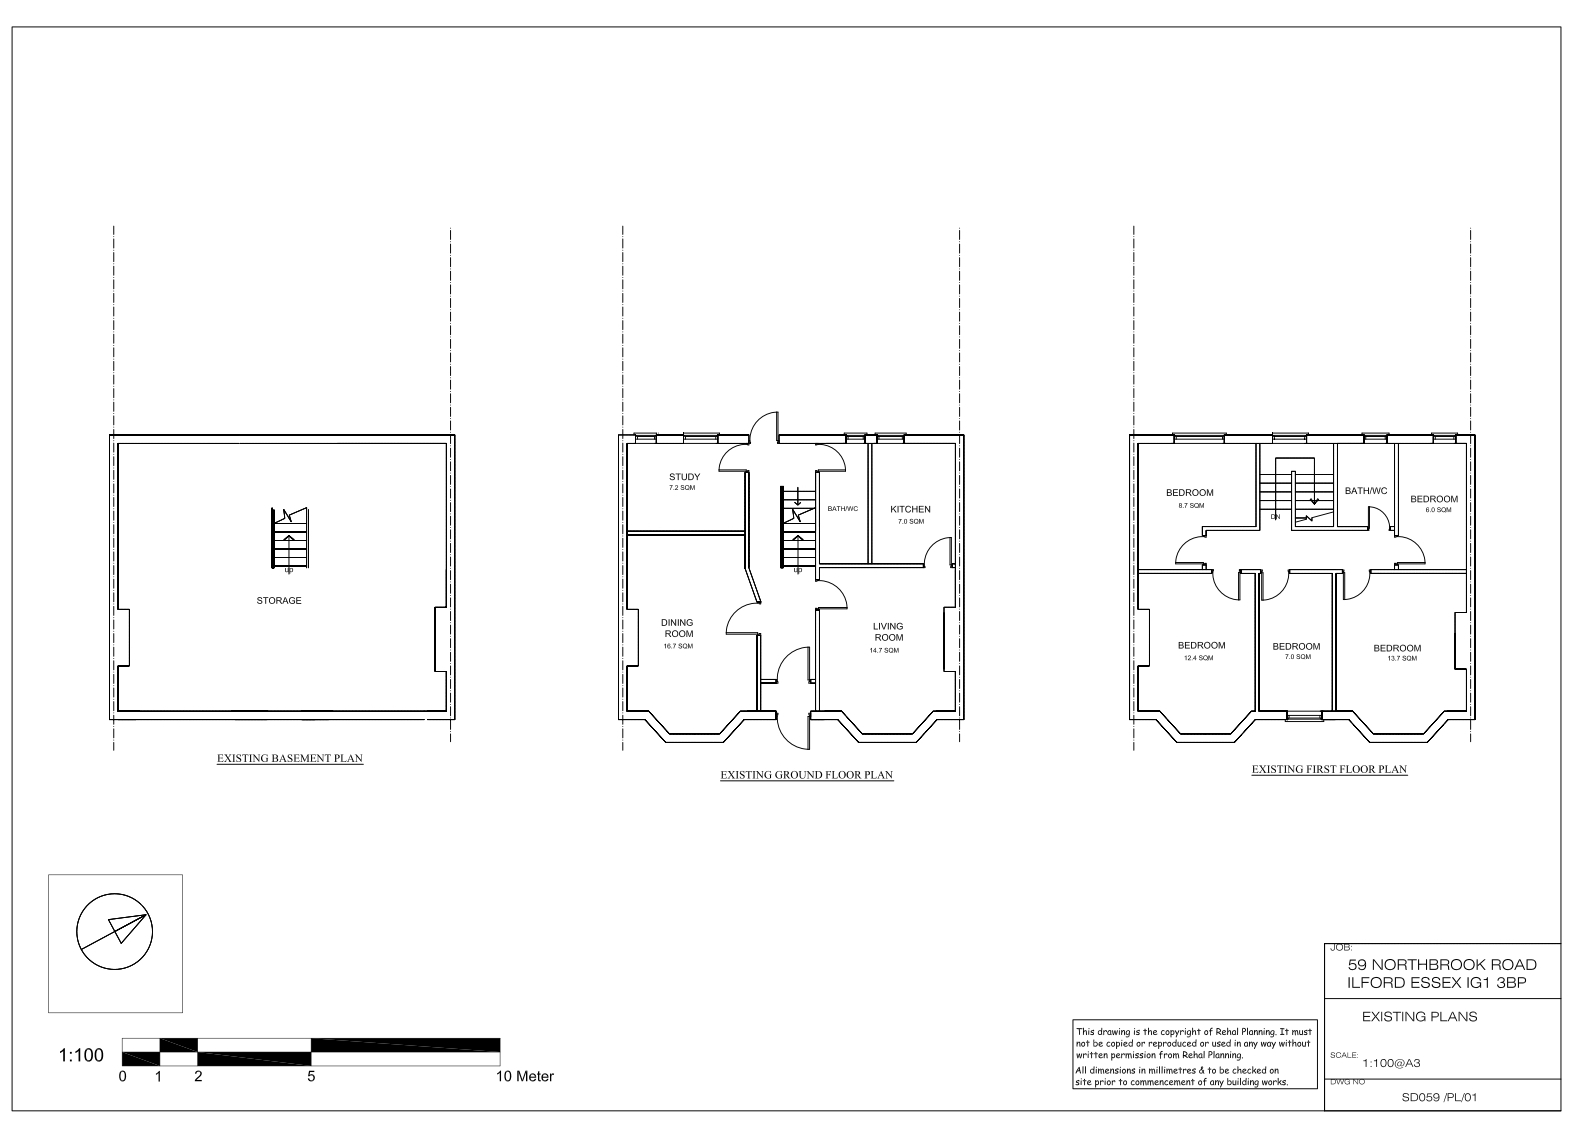 existing-floor-plans-59northbrook_rd